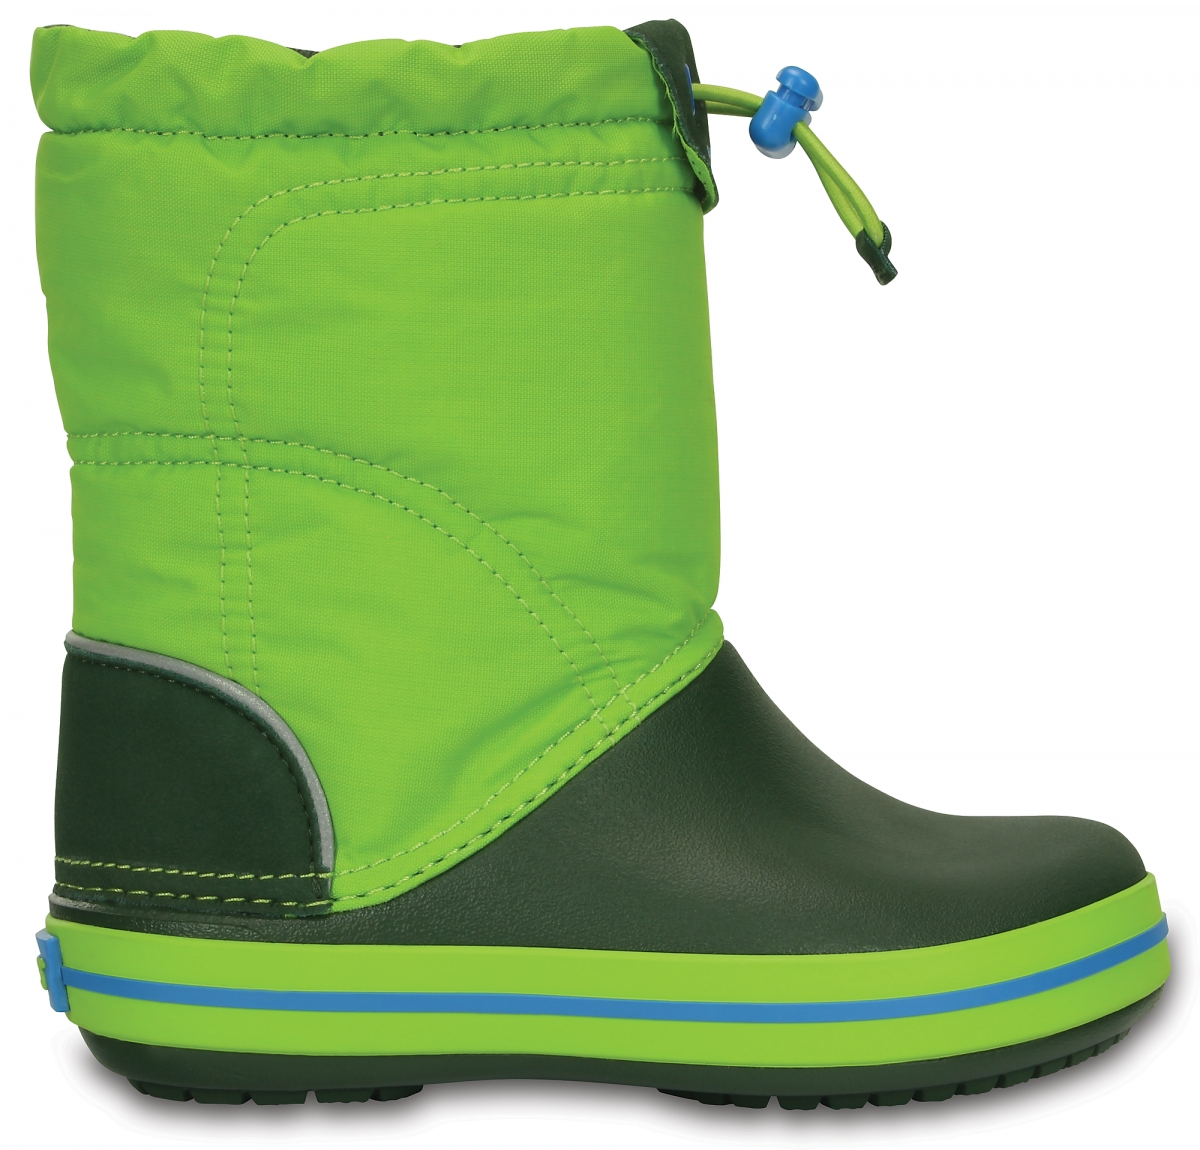 Crocs Crocband LodgePoint Boot Kids - Lime/Forest Green, C12 (29-30)